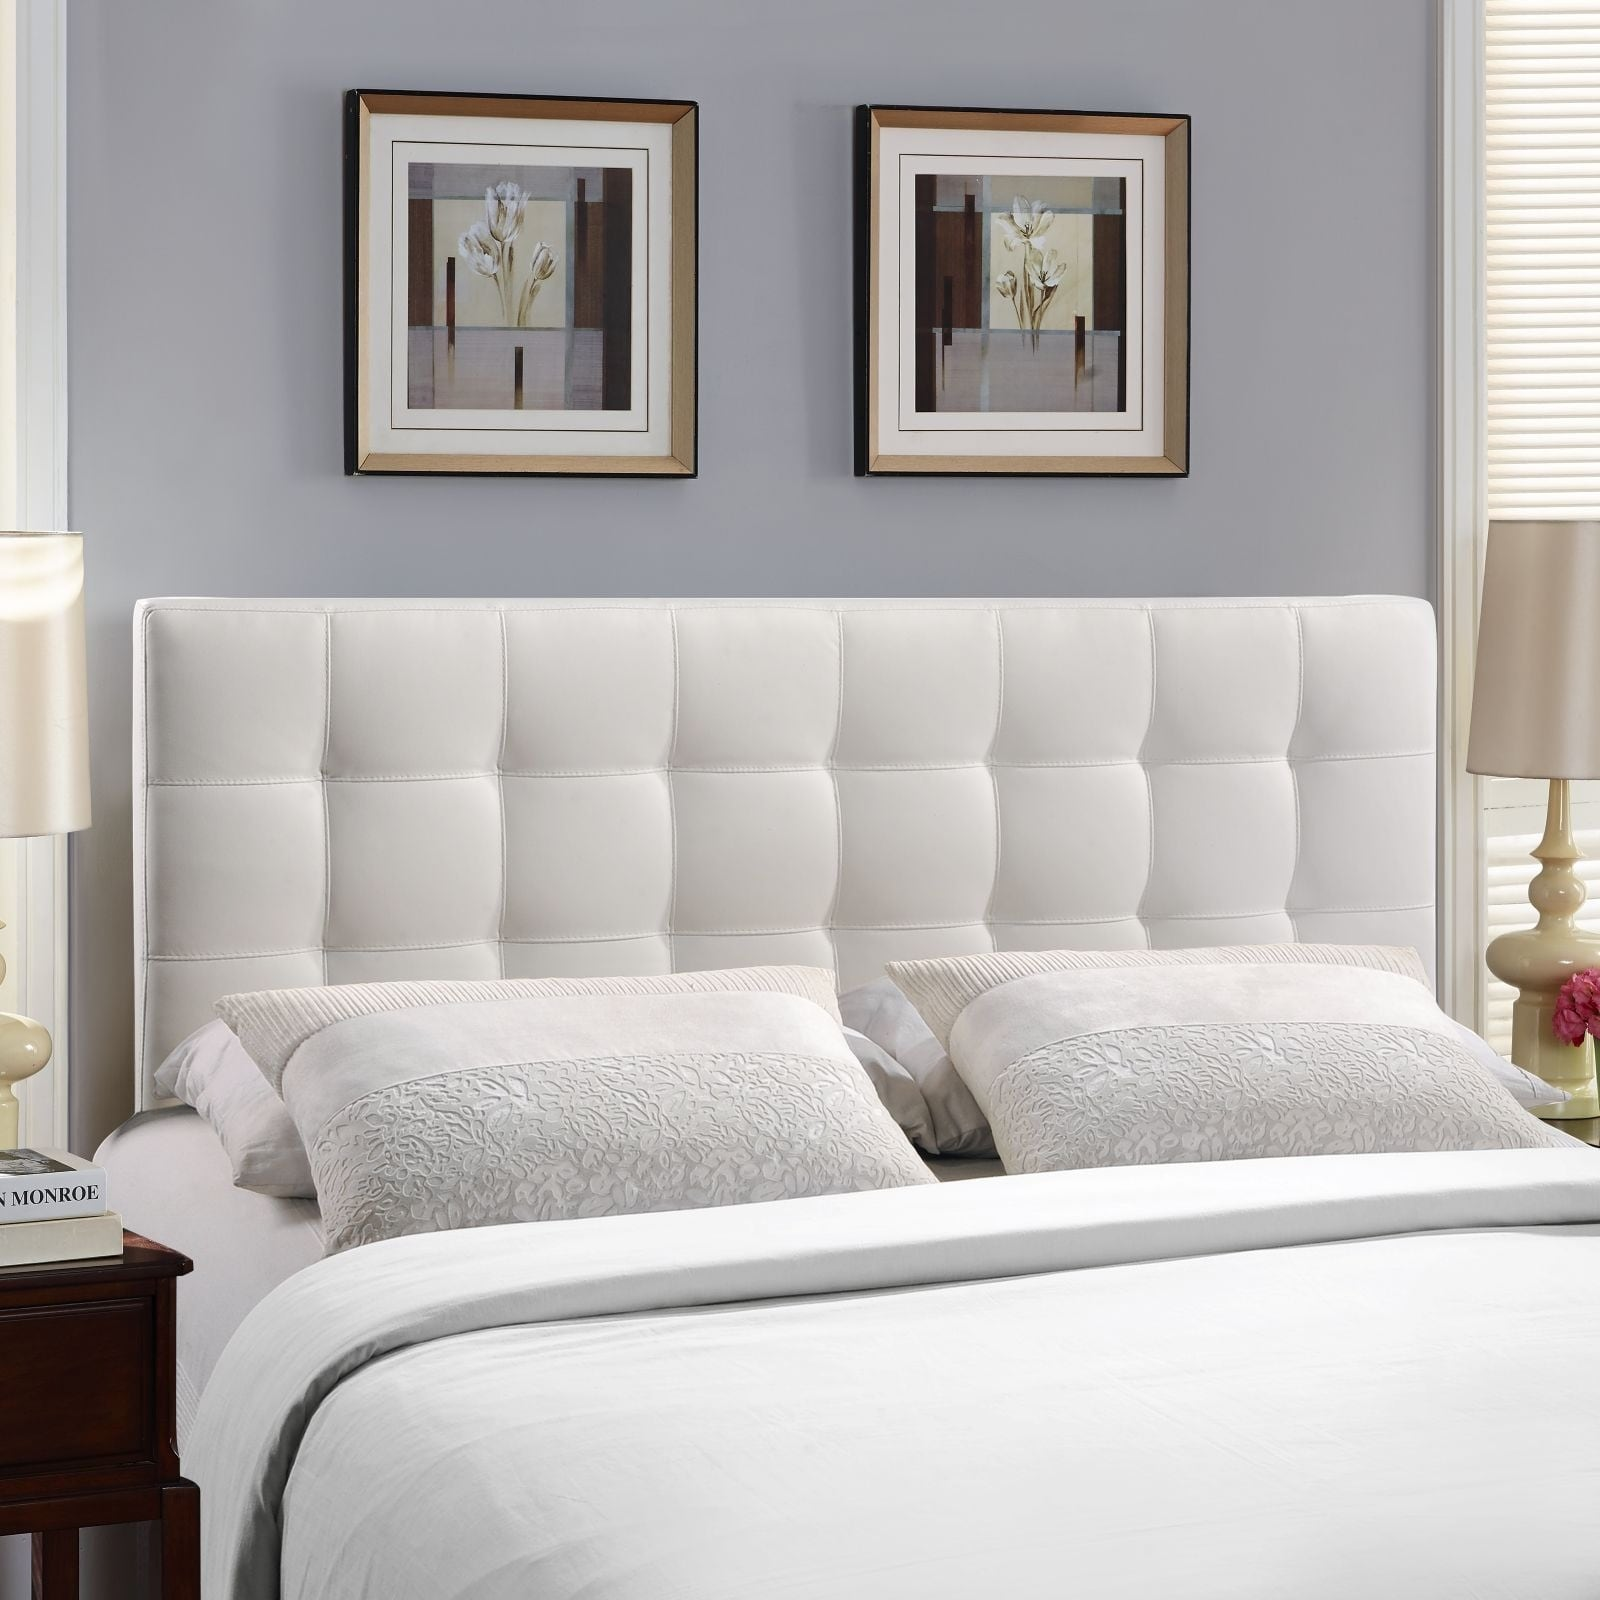 metal queen barbara white plans faux of platform the headboards buttons tufted stud knobs headboard crystal twin bedroomheadboard h with modern gleam diamond finials size this sparkling headb full